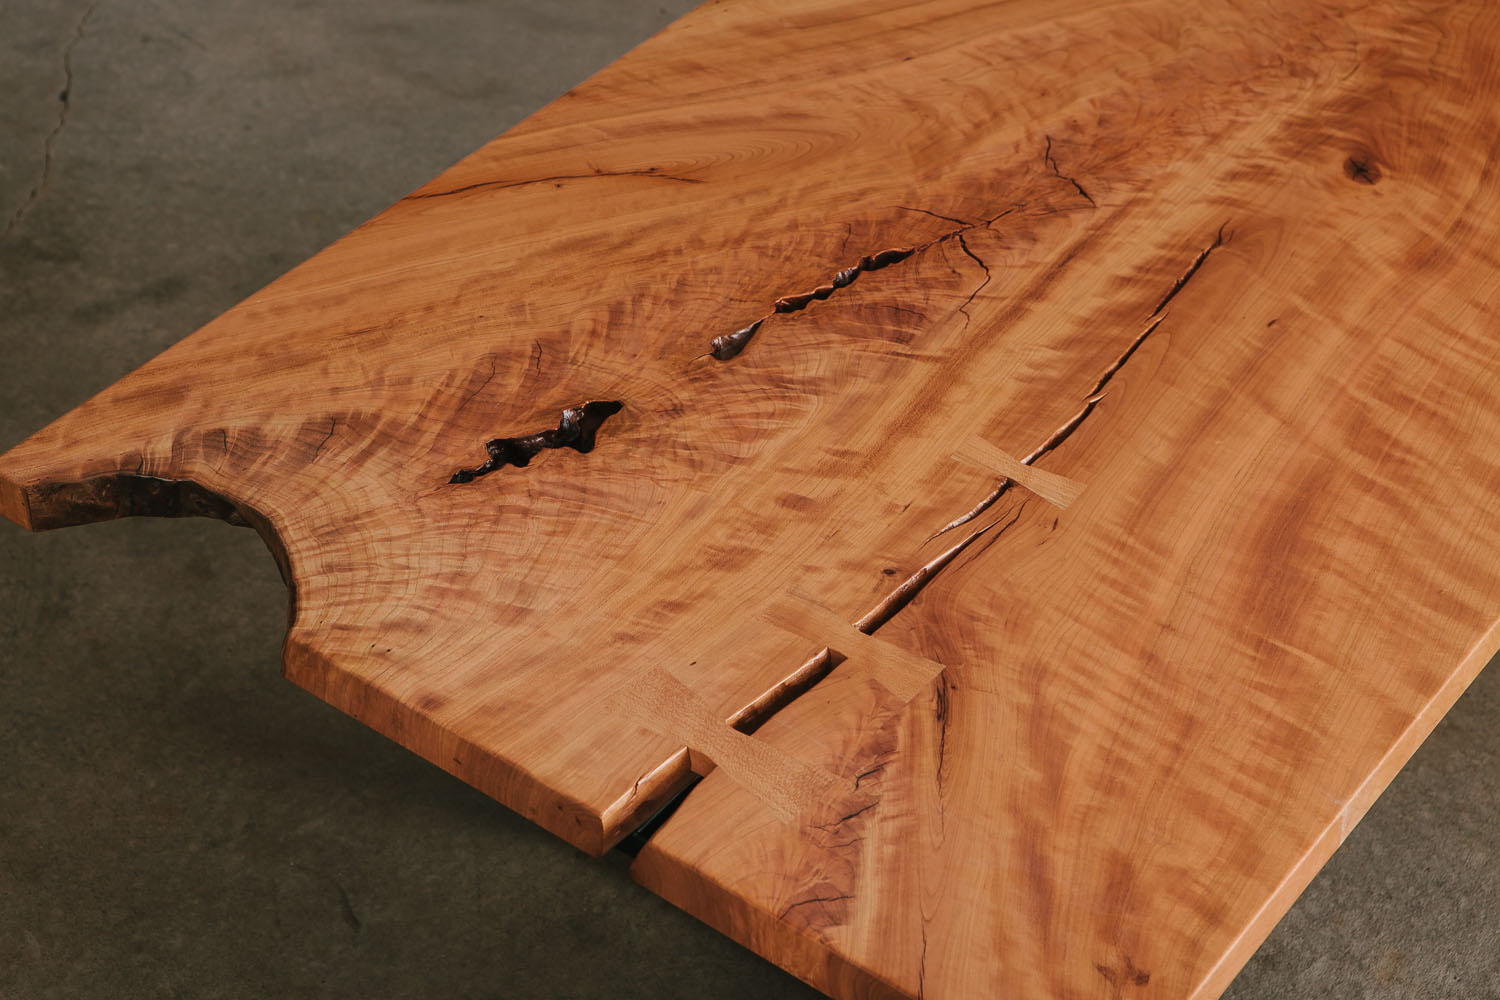 Live edge cherry slab with figured grain and natural tree elements